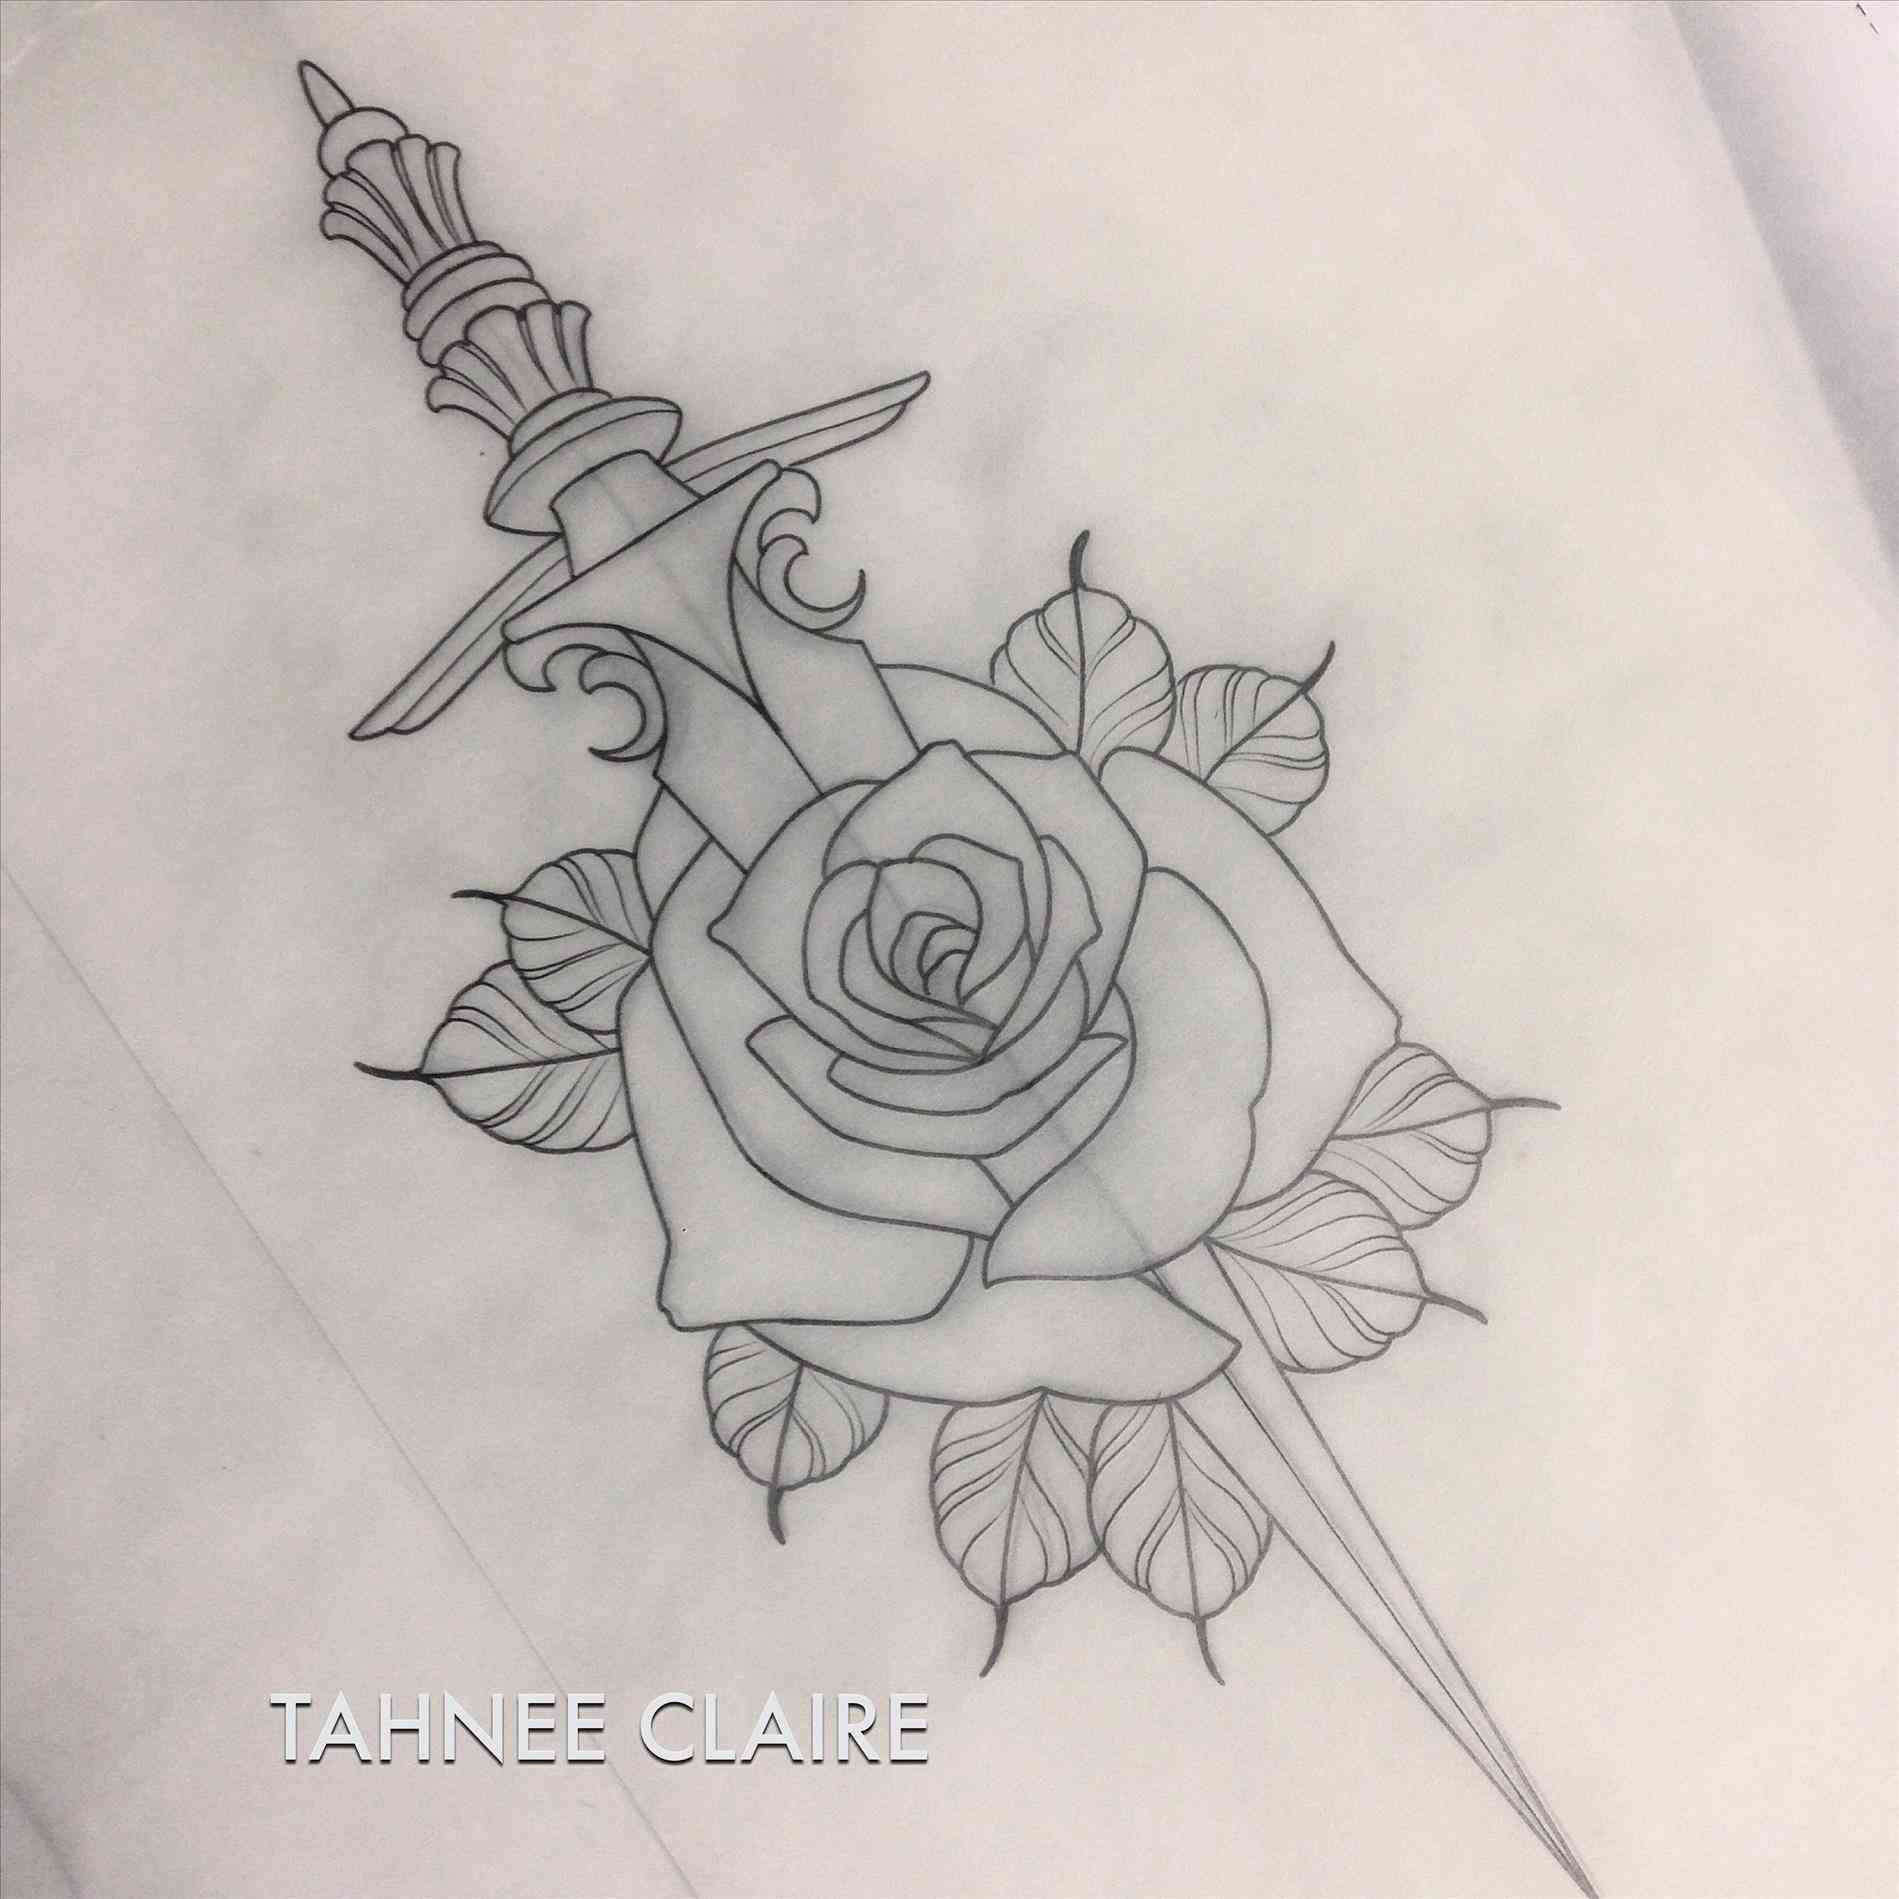 1899x1899 Neo Traditional Rose Tattoo Flash Traditional Roses Tattoo By Kade